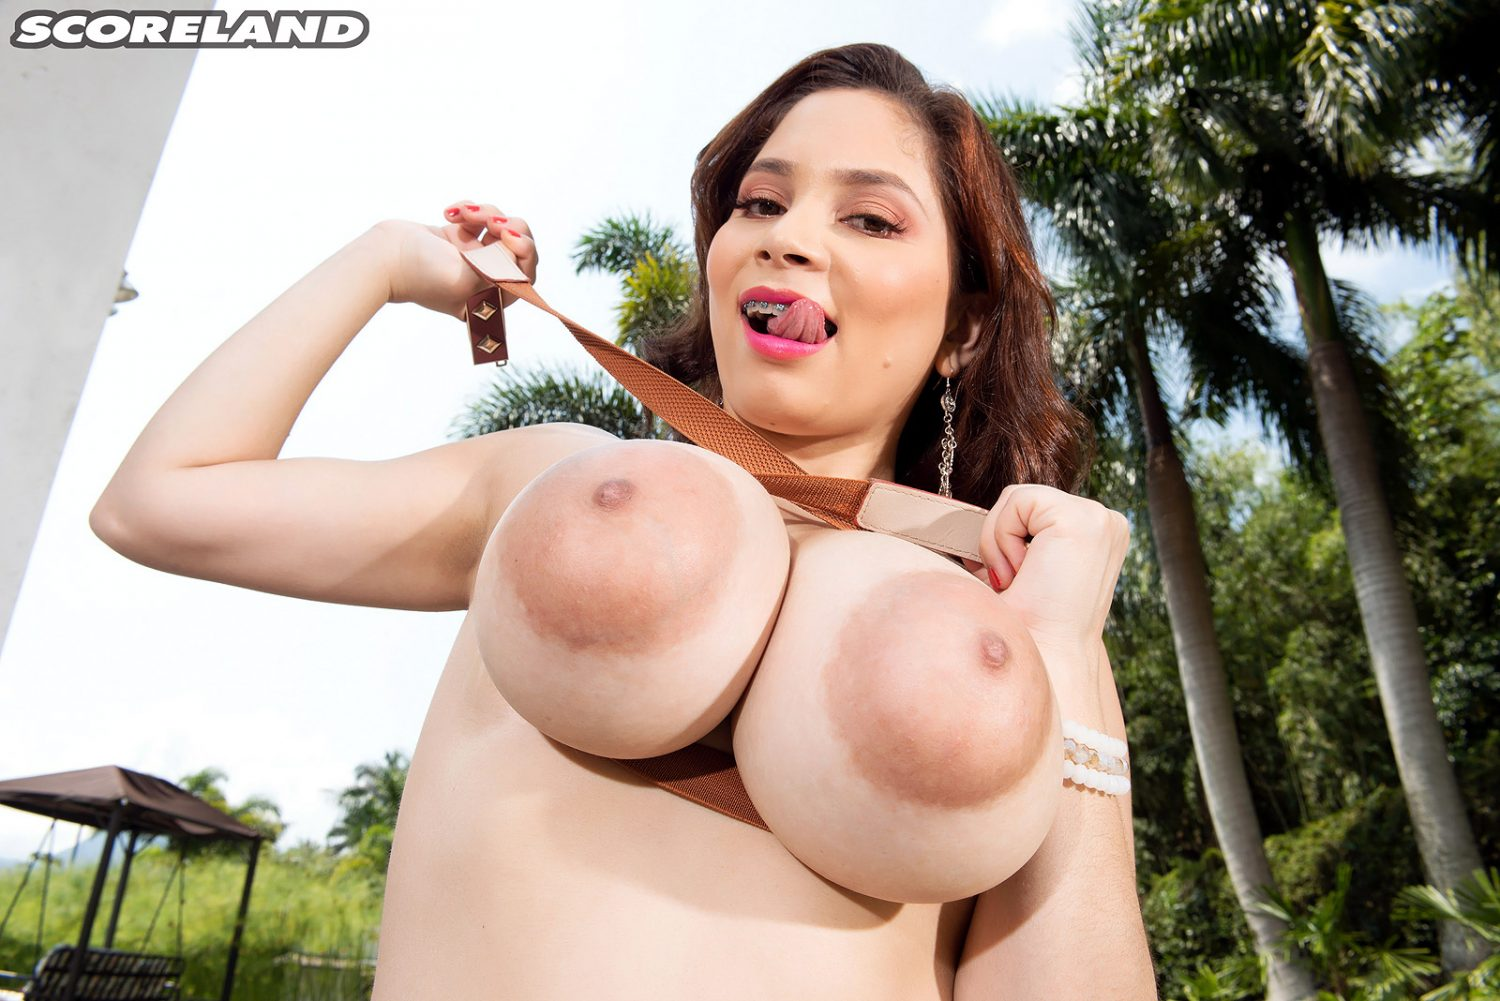 Kim Velez Braces For Big Tit Fun In The Country Scoreland